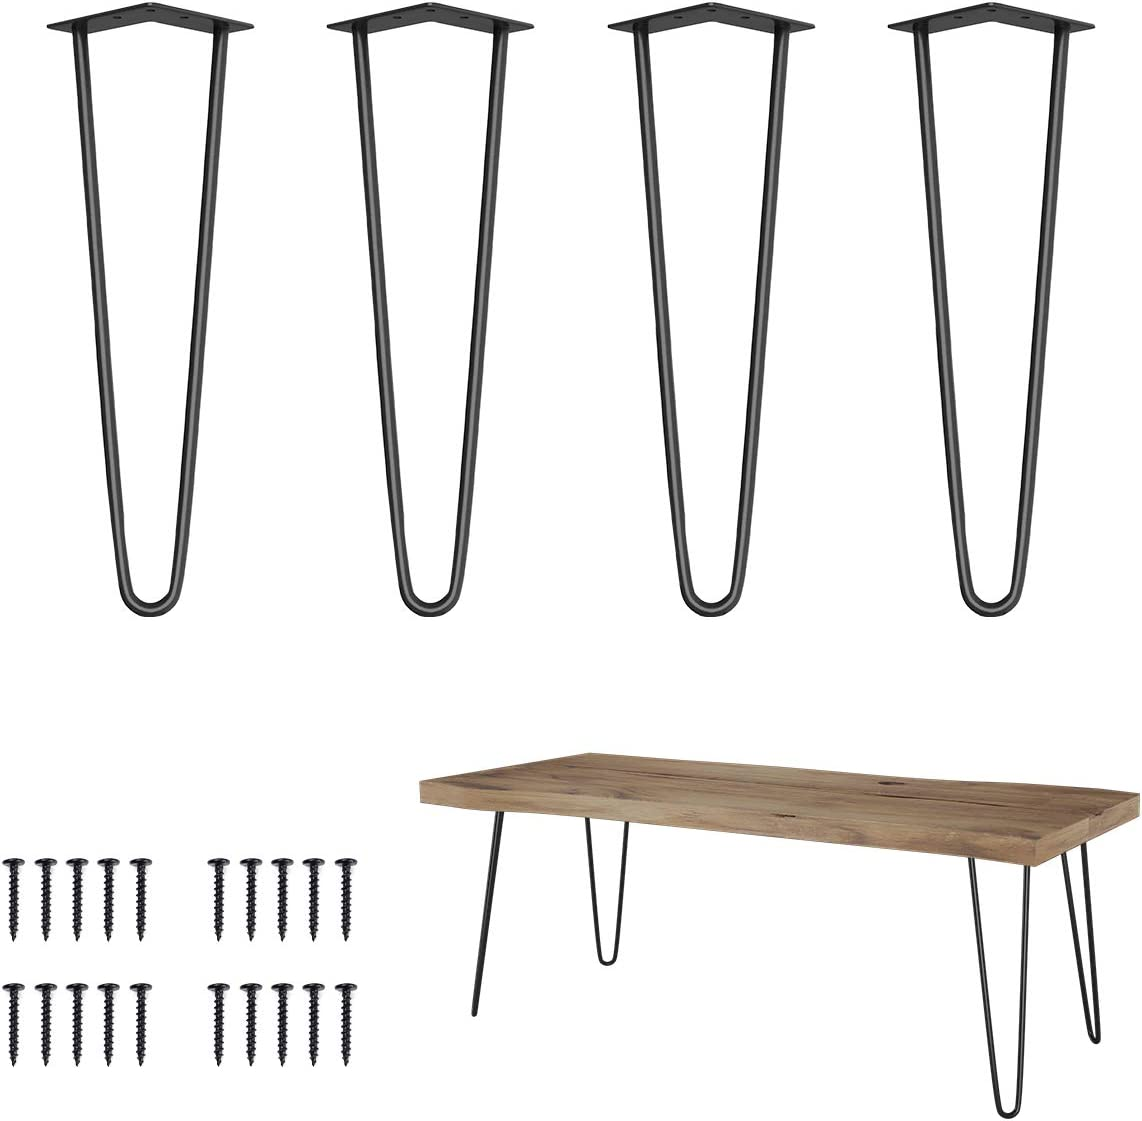 "Elicit 16"" Heavy Duty Hairpin Coffee Table Legs (Set of 4), 3/8"" Thick, Black"